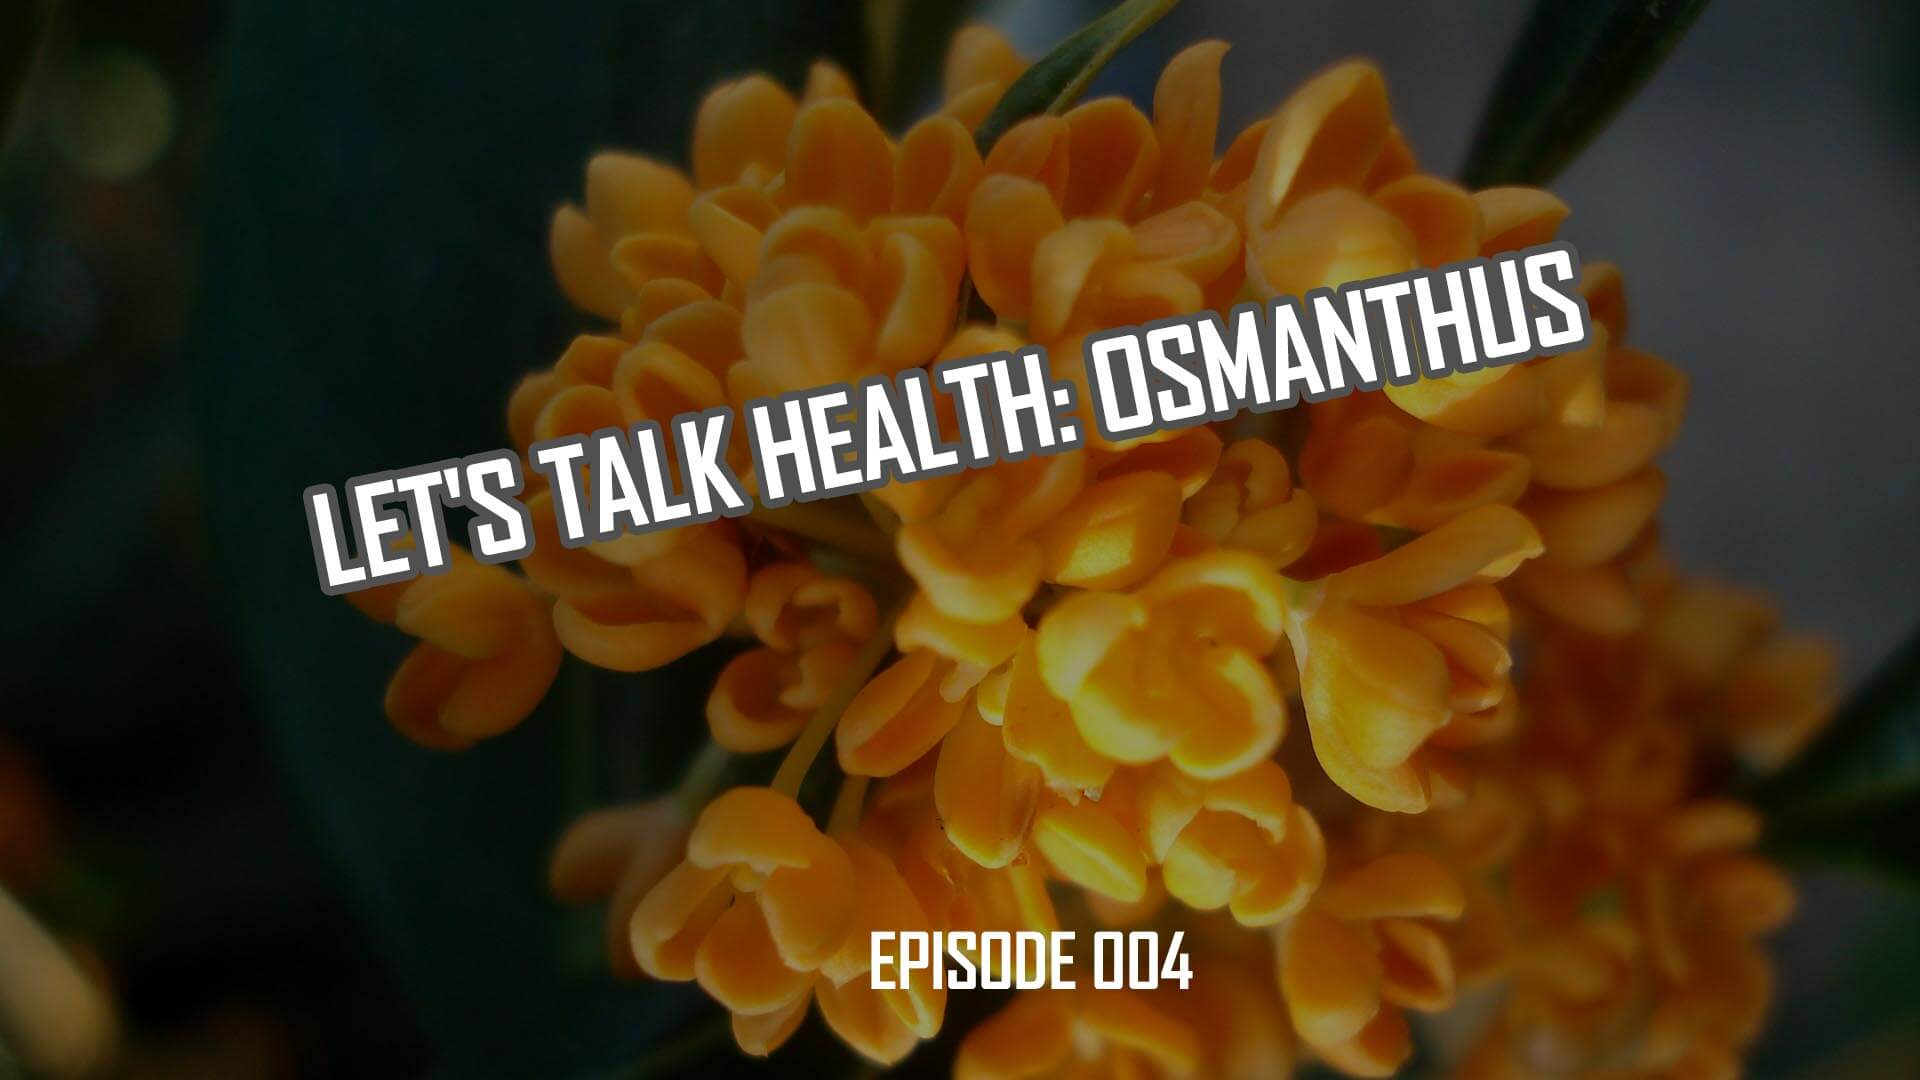 Let's Talk Health: Osmanthus Origins and Benefits (004)